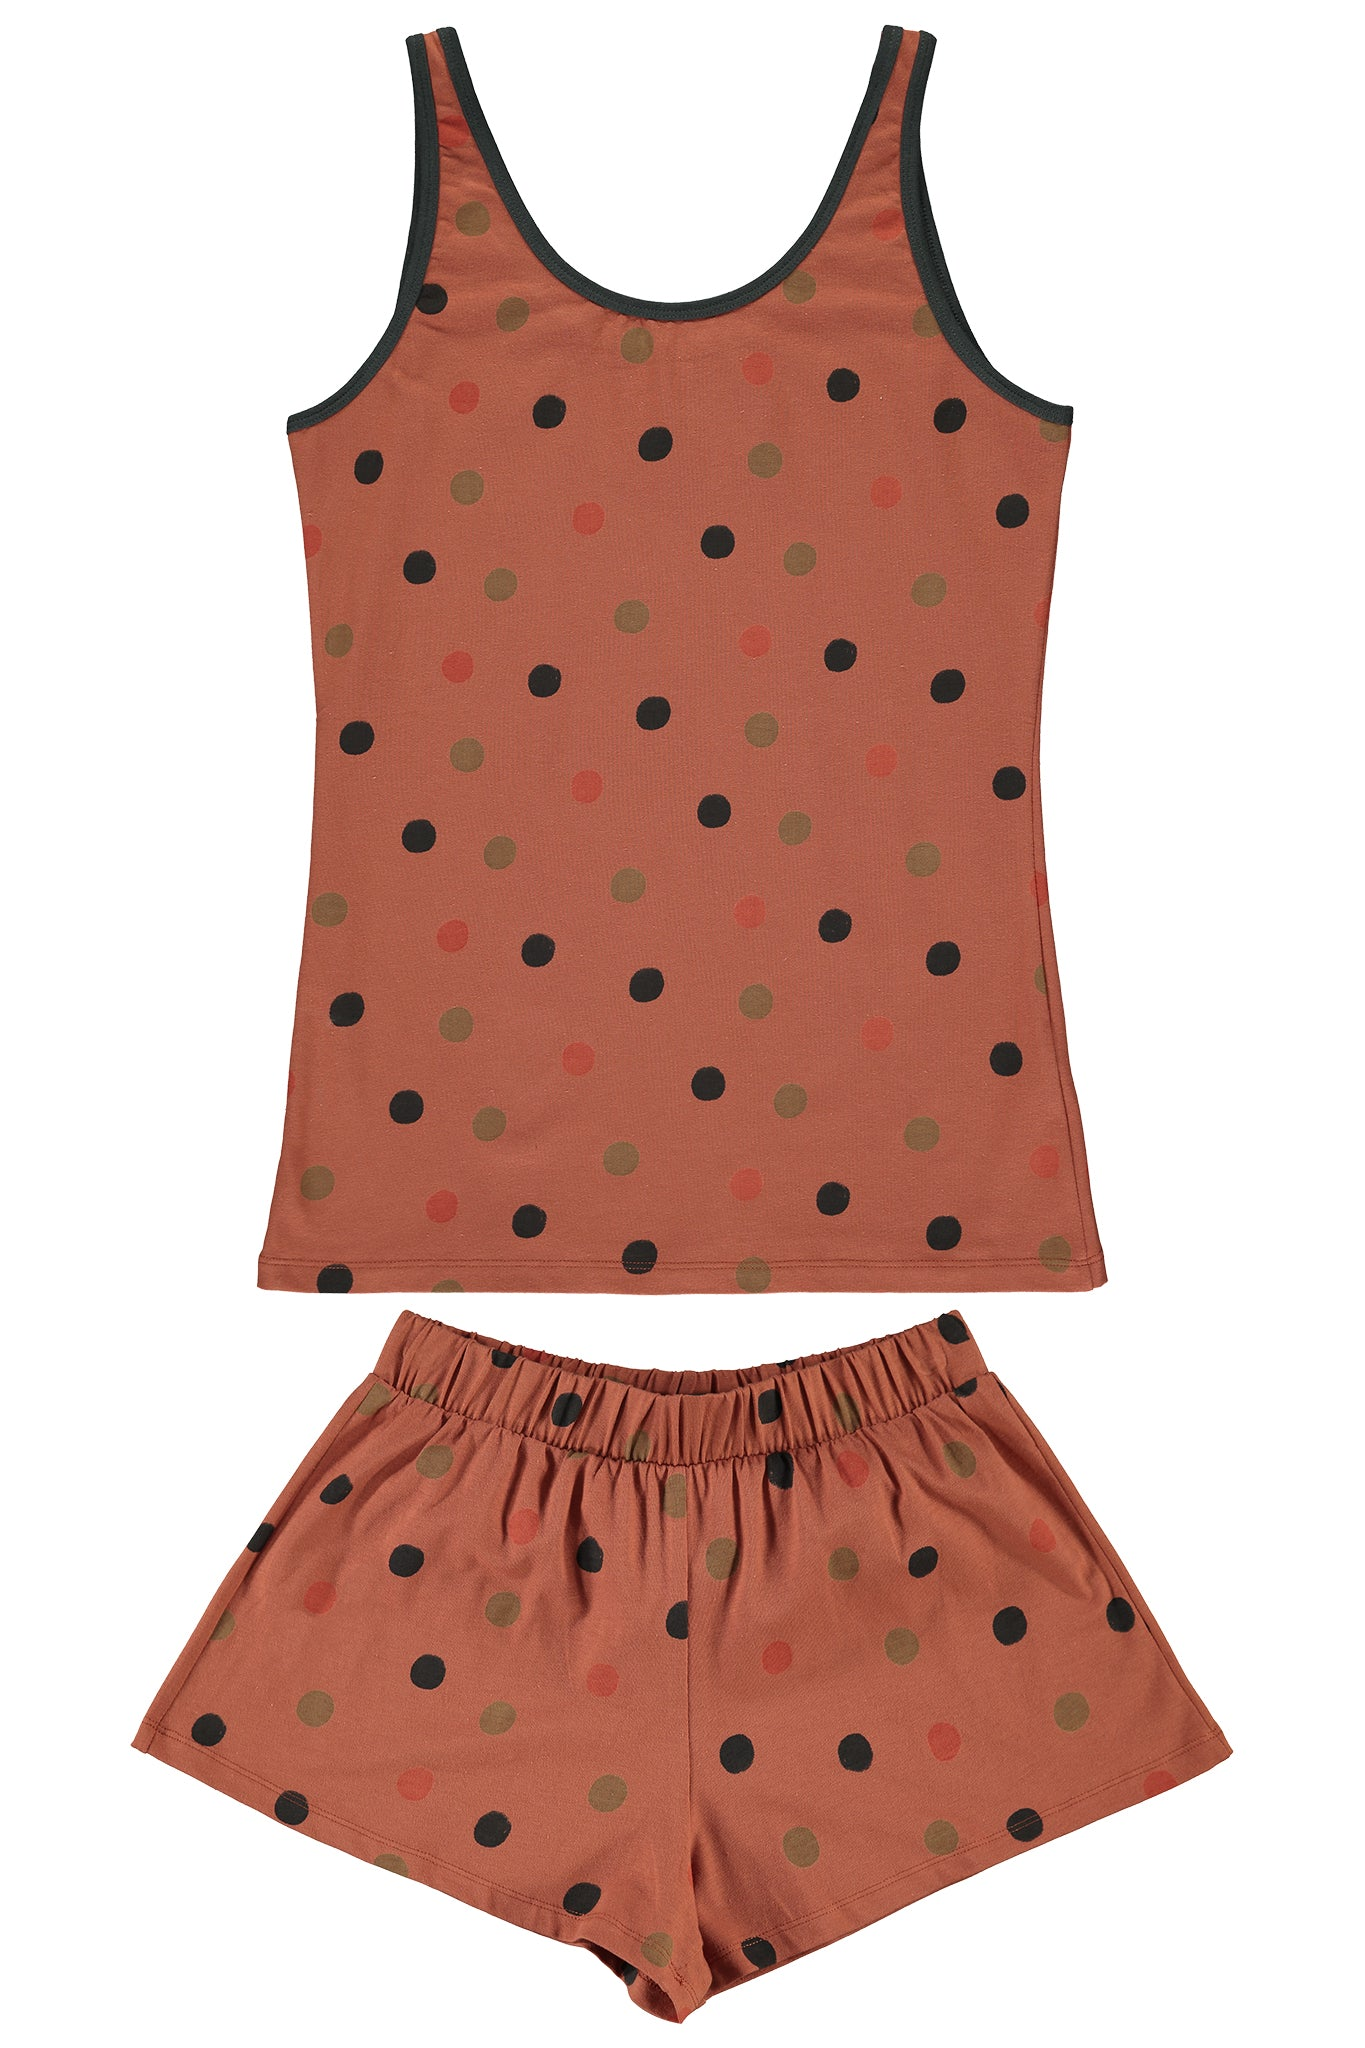 WOMEN'S SHORT JYMS- POLKA DOT RUST